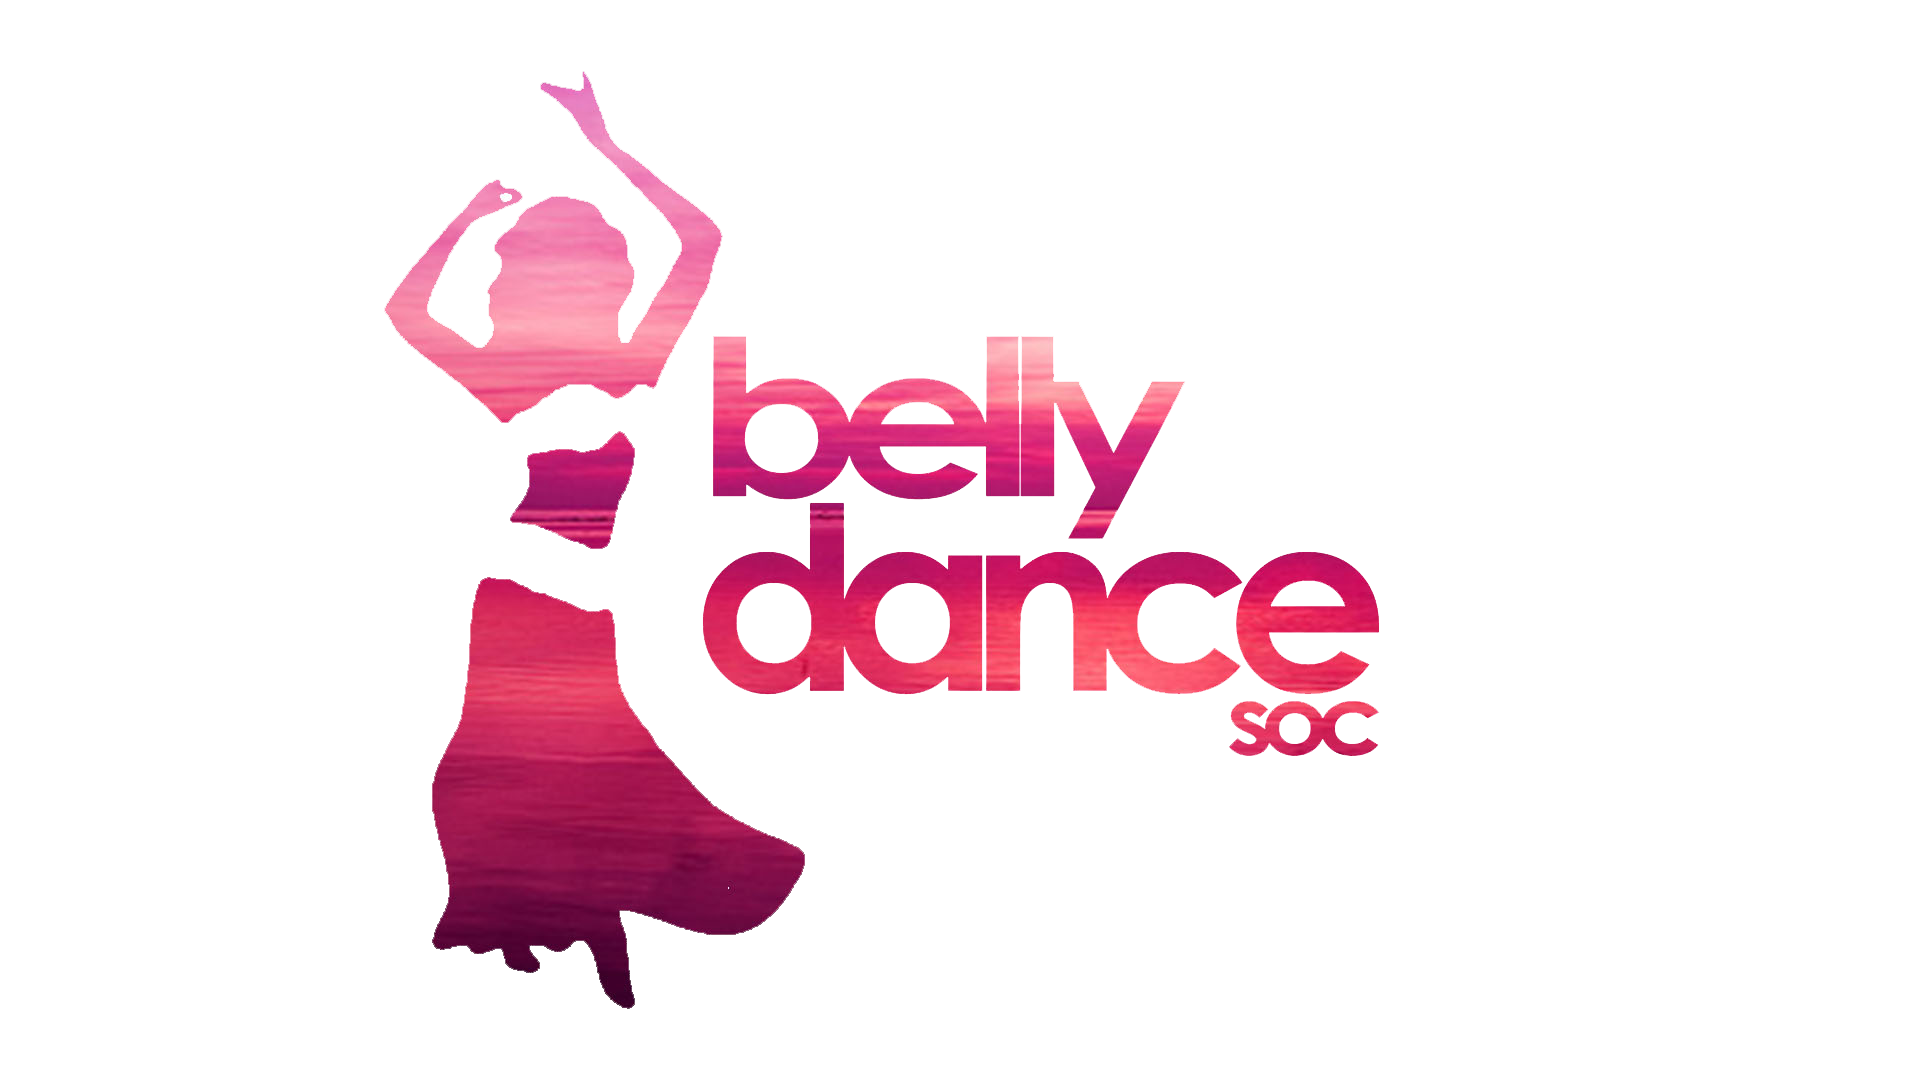 Belly Dance Society thumbnail